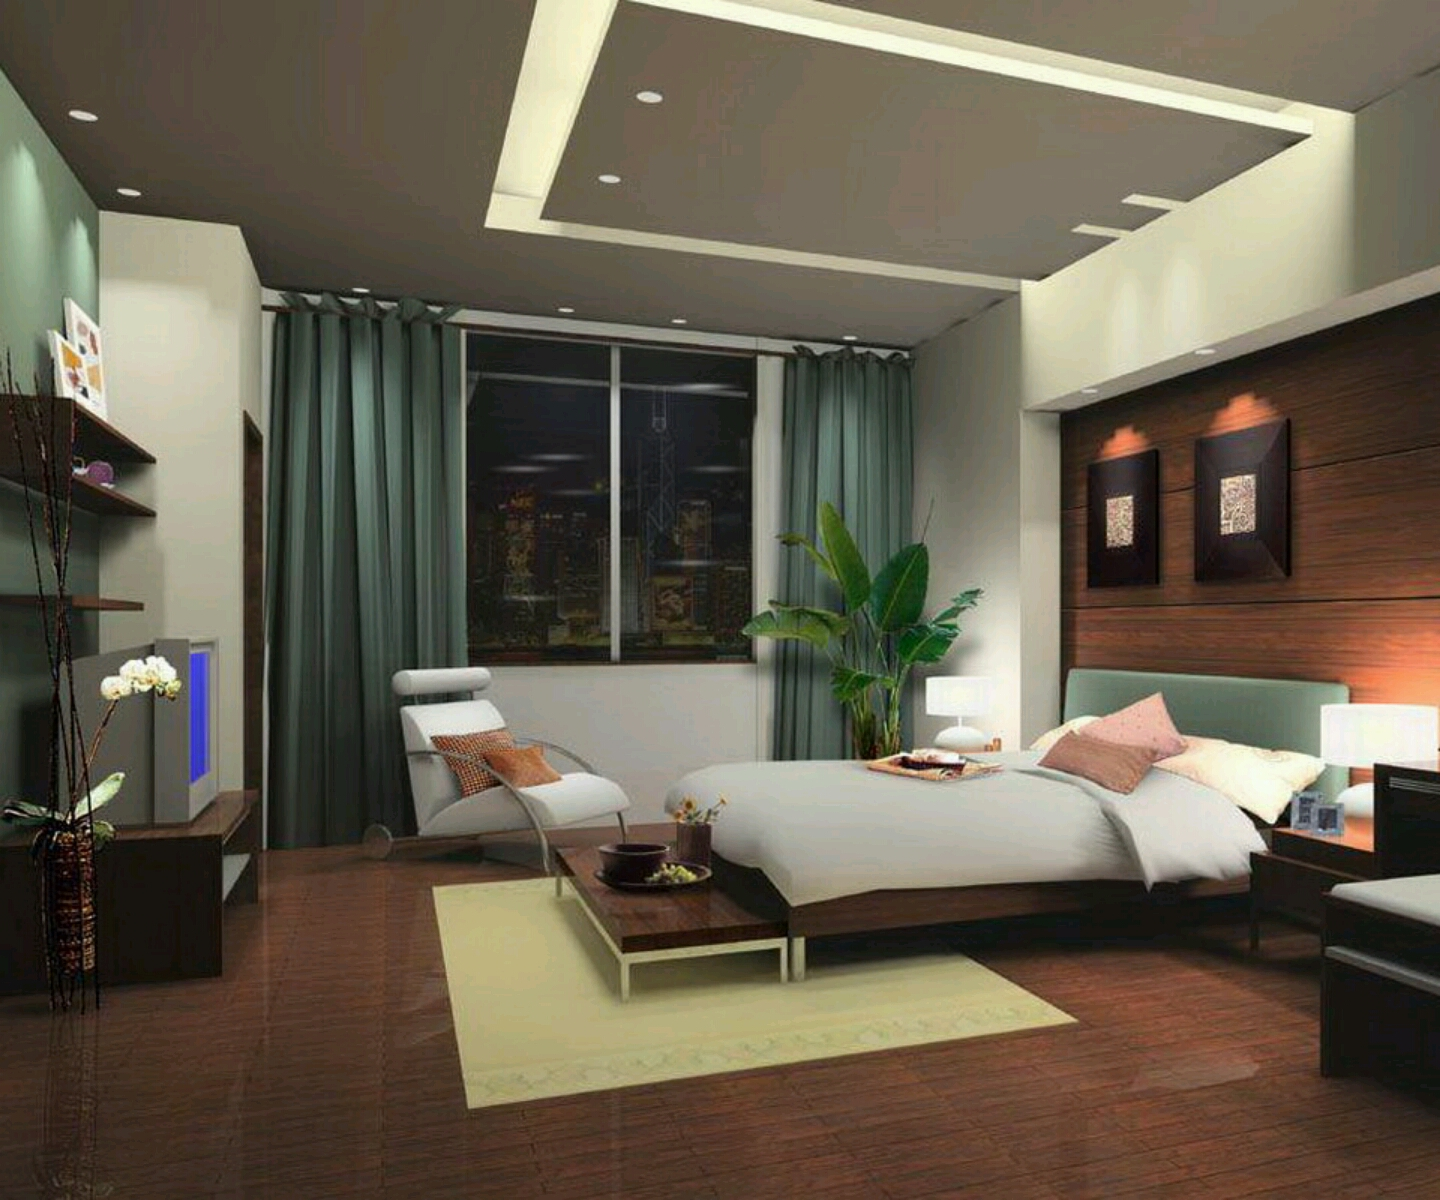 New home designs latest modern bedrooms designs best ideas for Modern small bedroom interior design